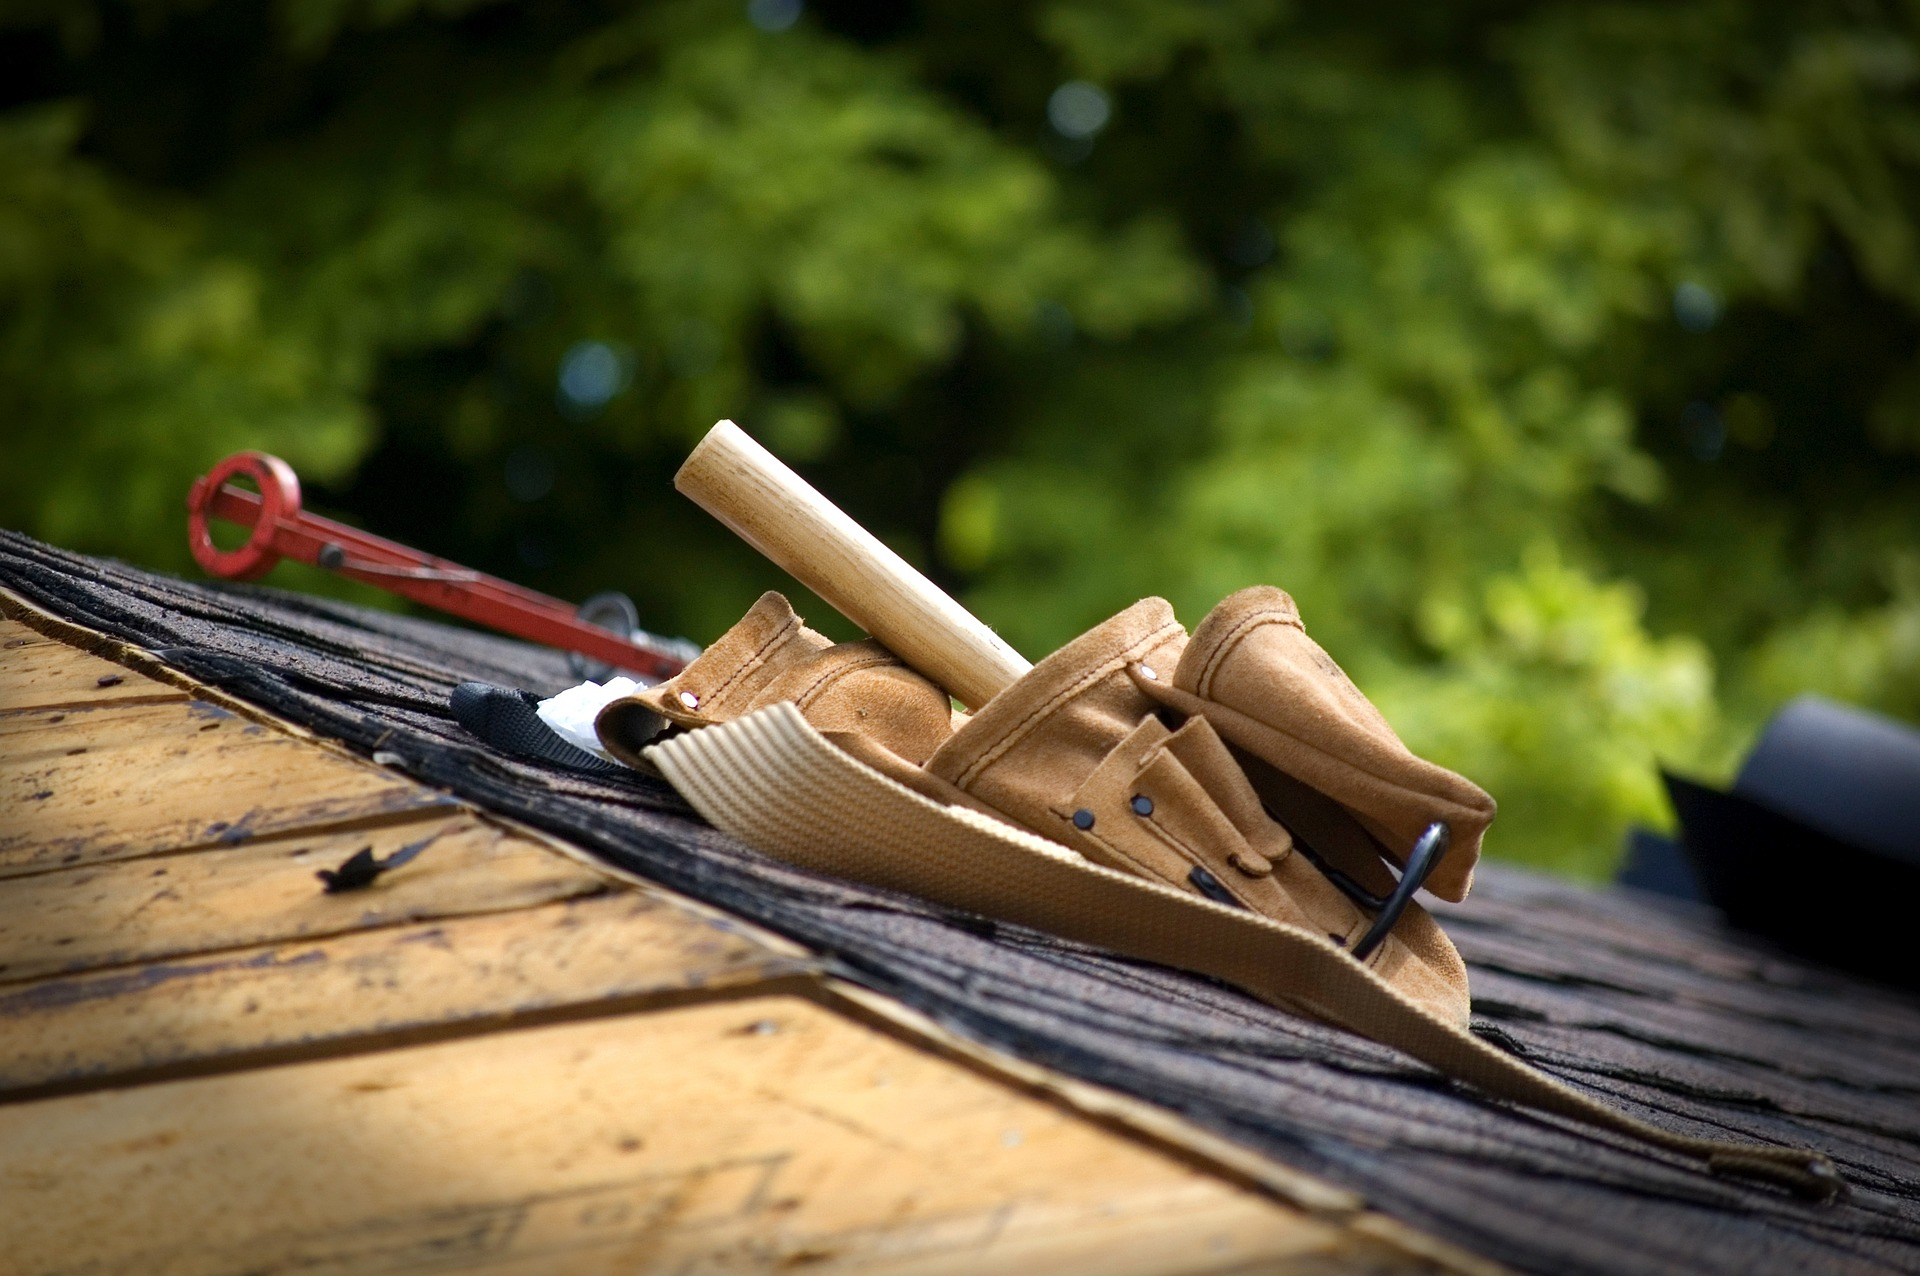 Harness the Safety of Fall Protection